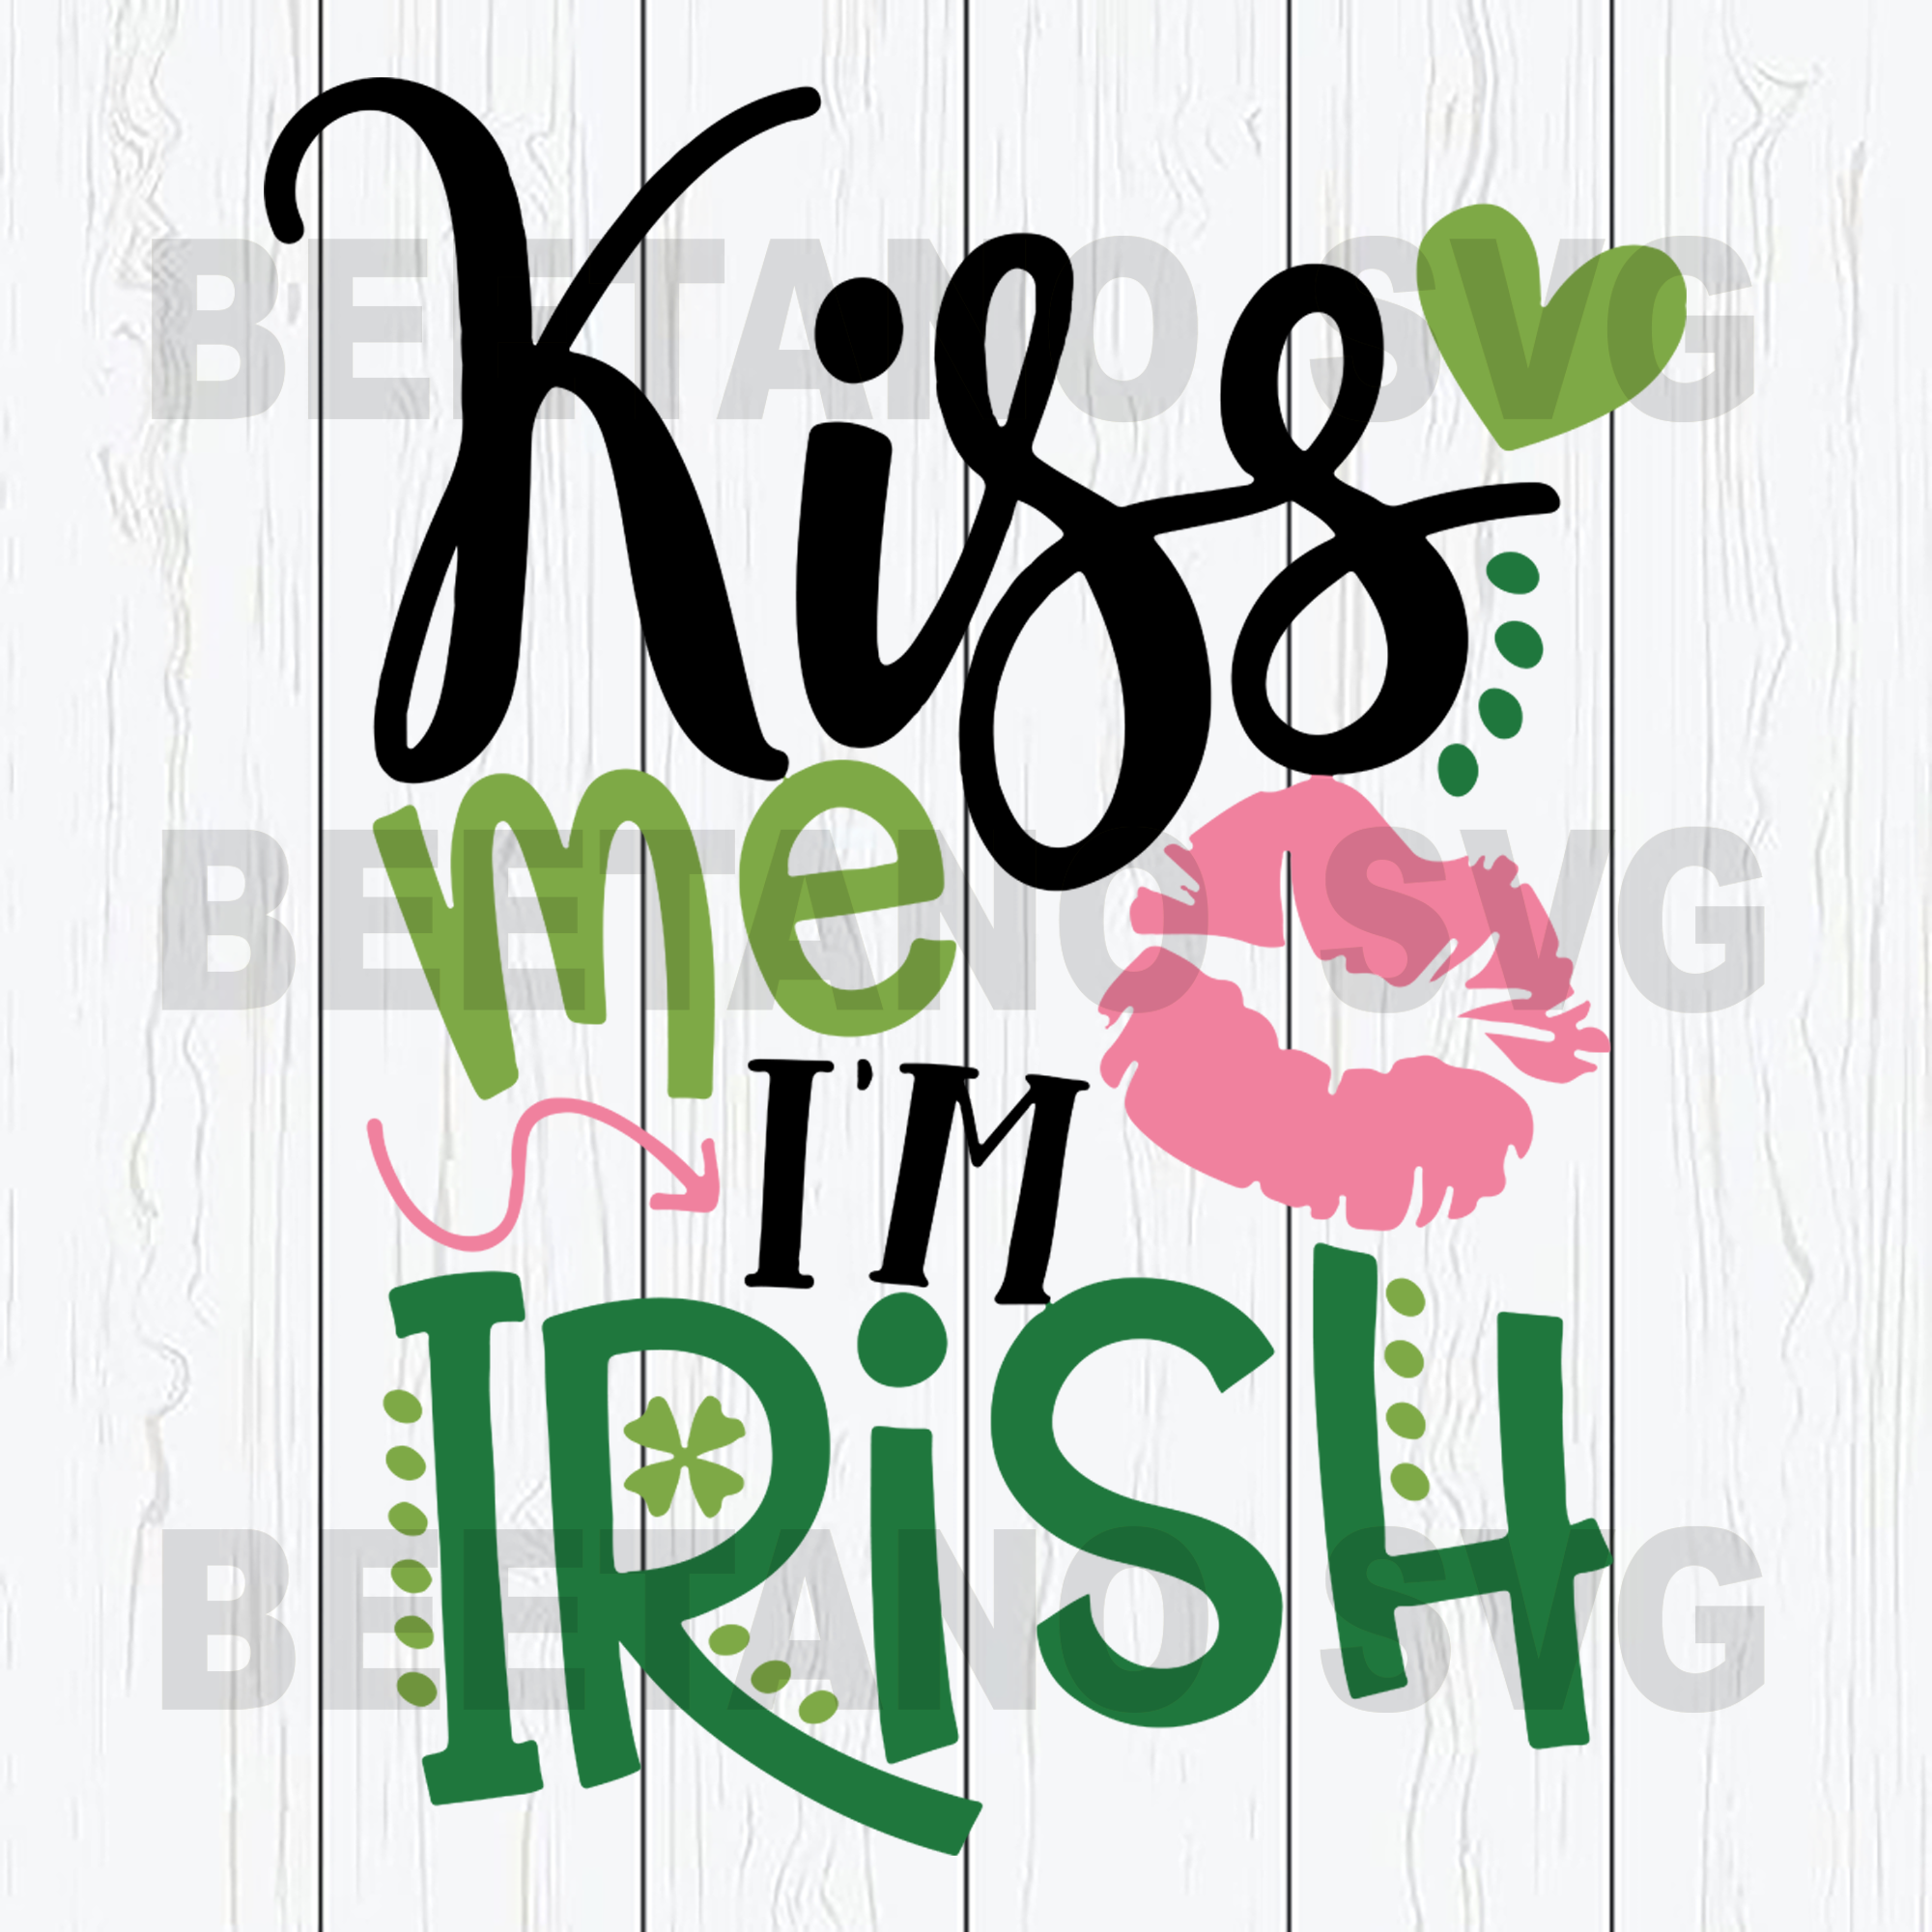 Kiss me I'm Irish Cutting Files For Cricut, SVG, DXF, EPS, PNG Instant Download